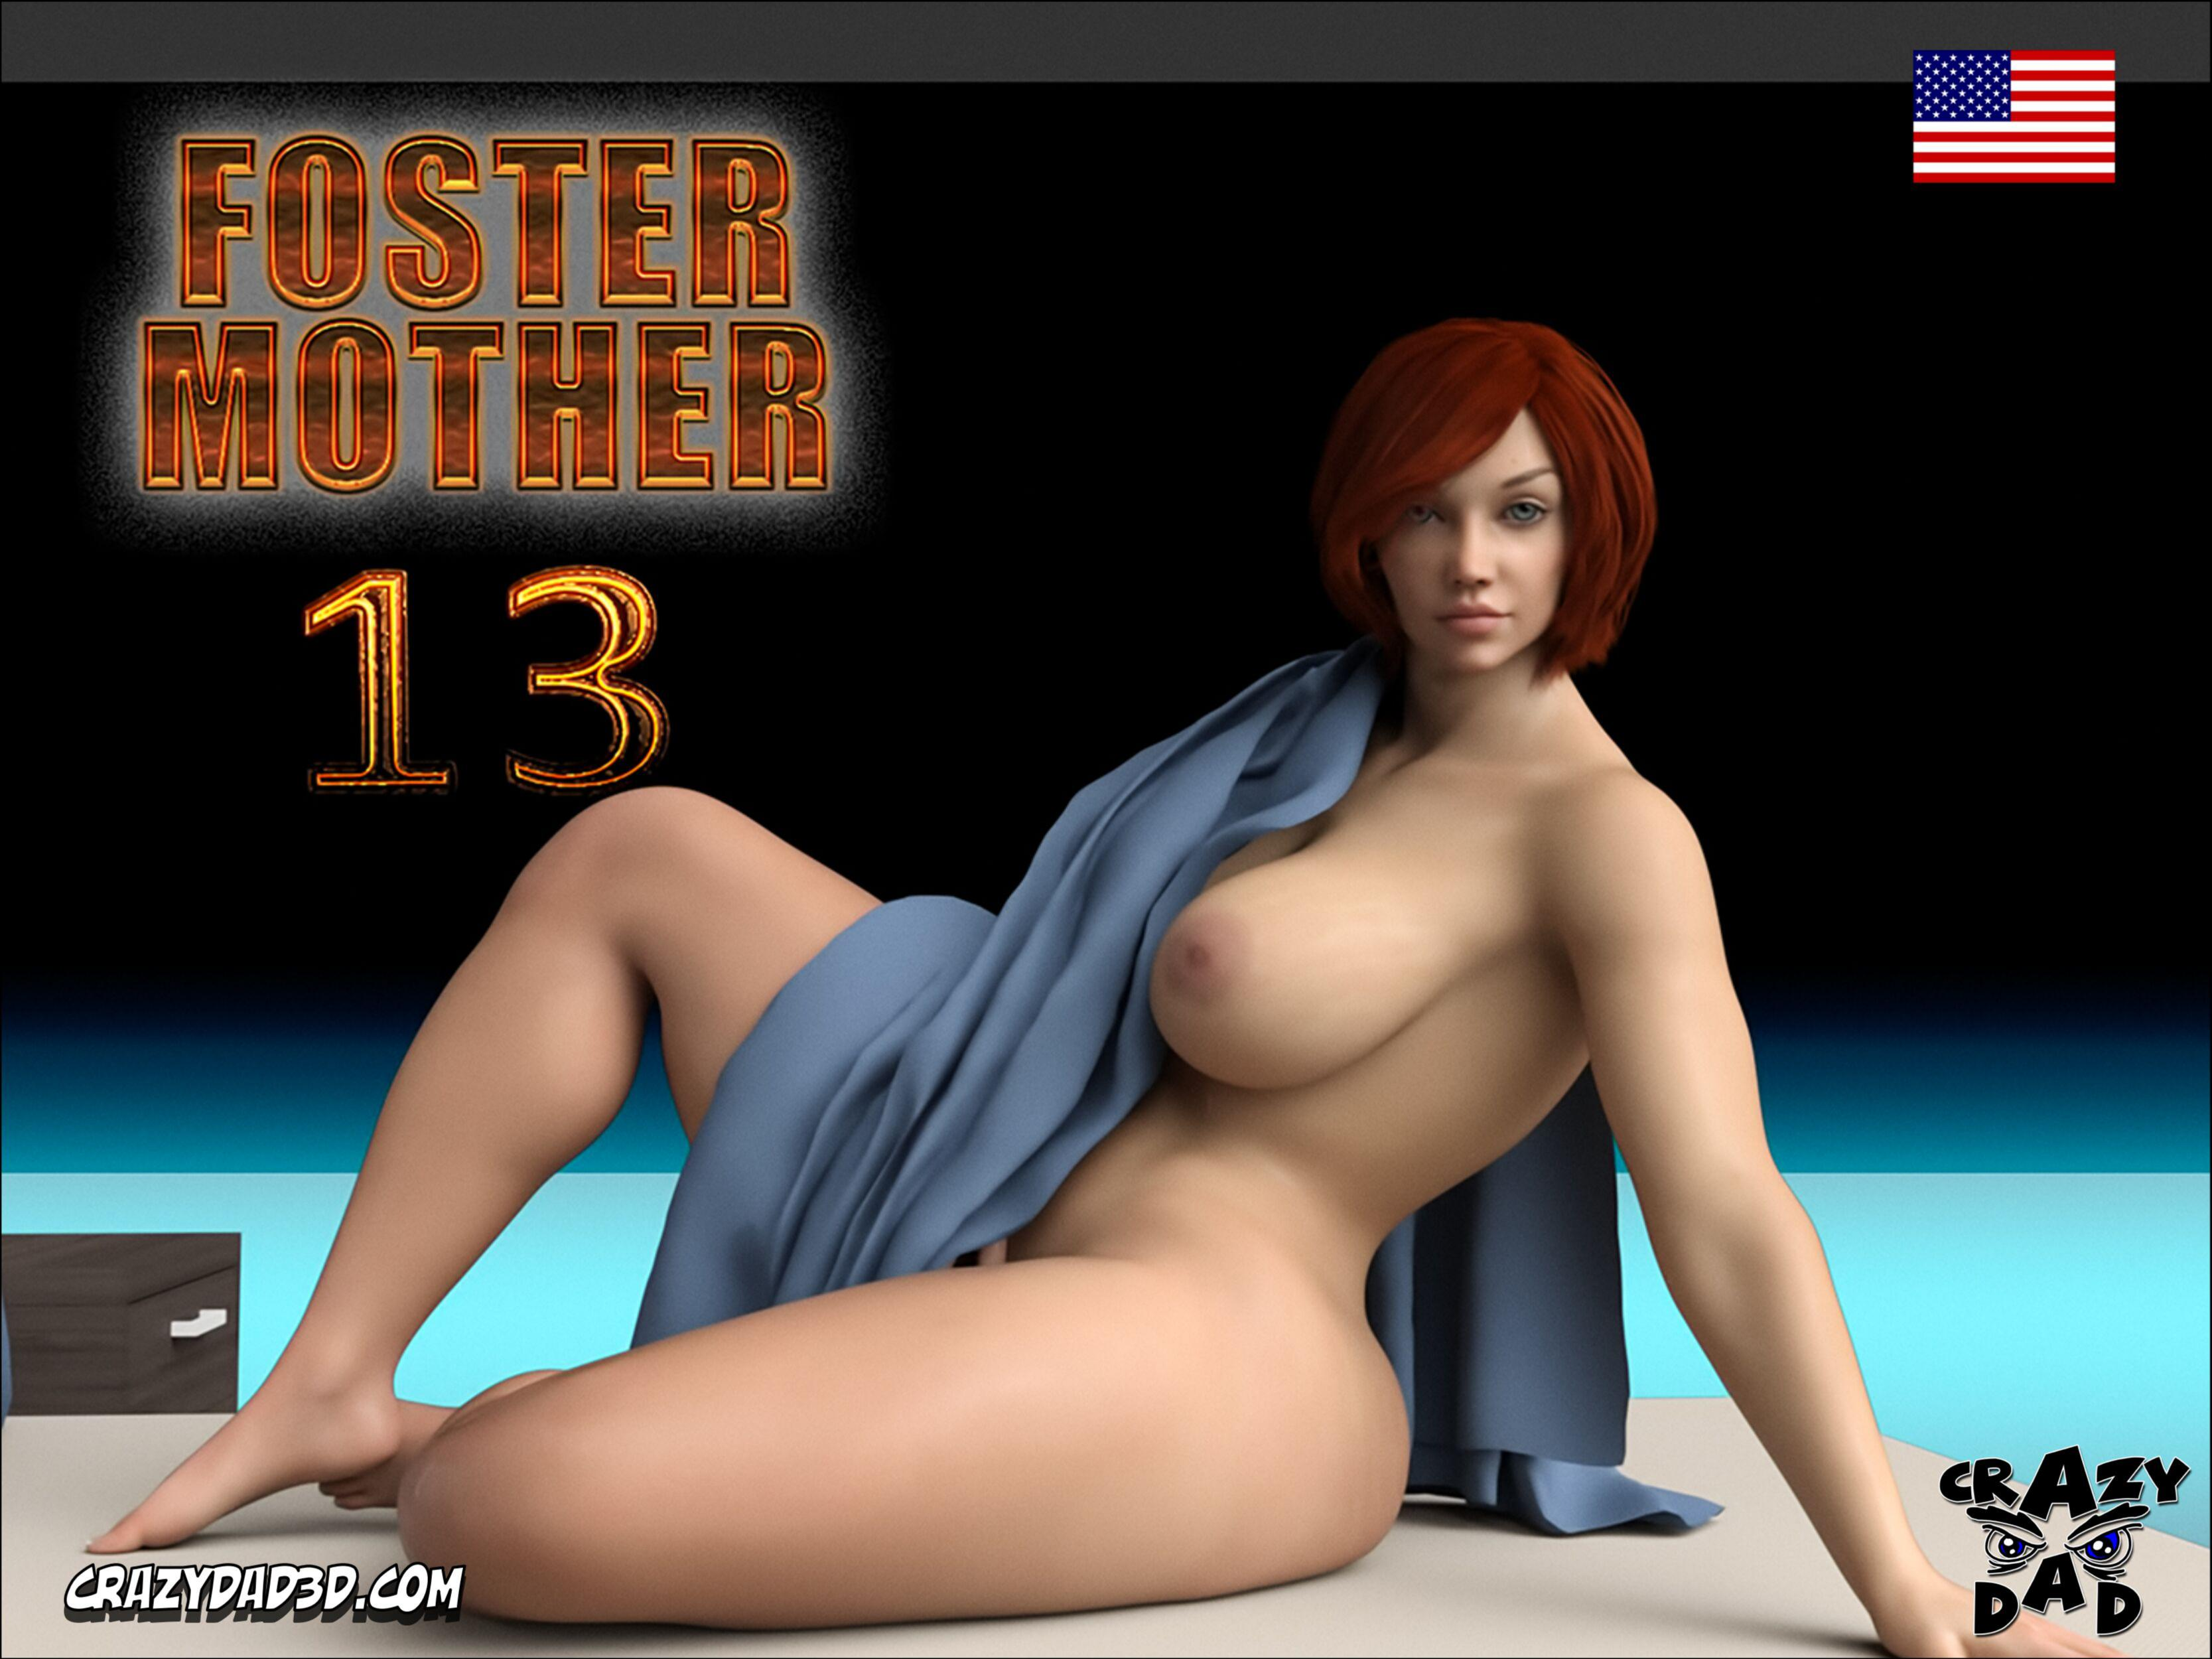 [Crazy Dad]Foster Mother 13 - 情色卡漫 -